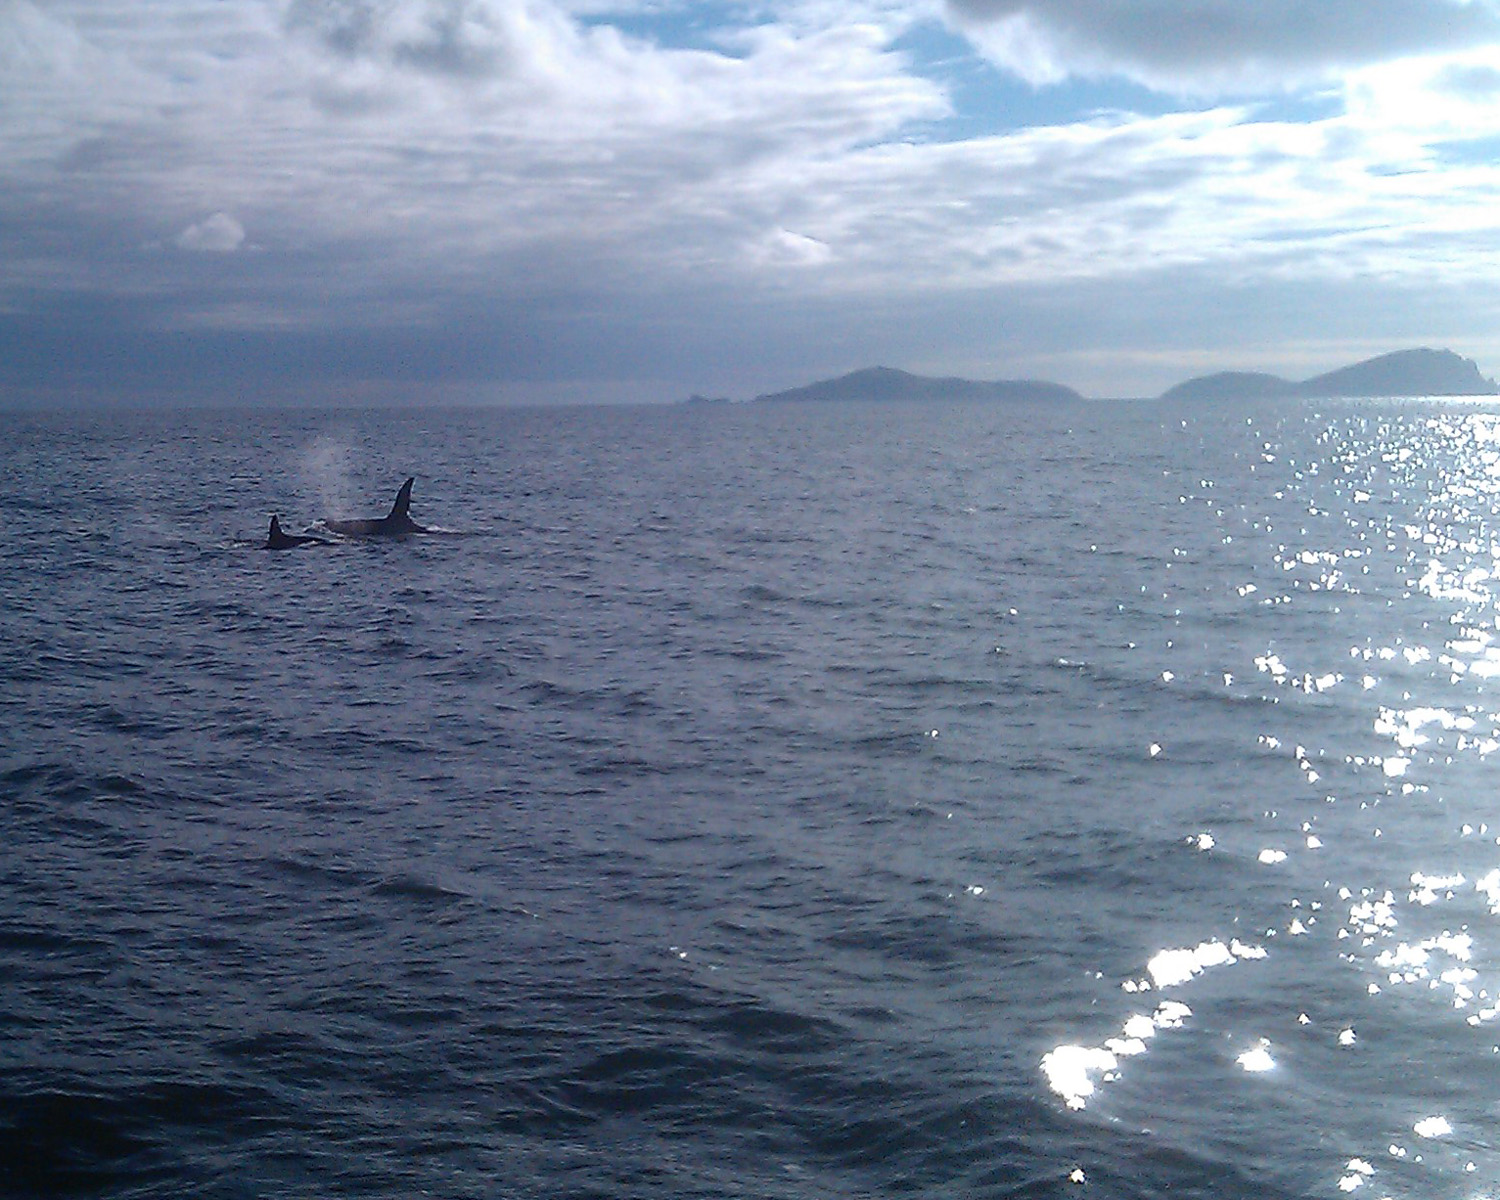 Two orca off Blasket Islands